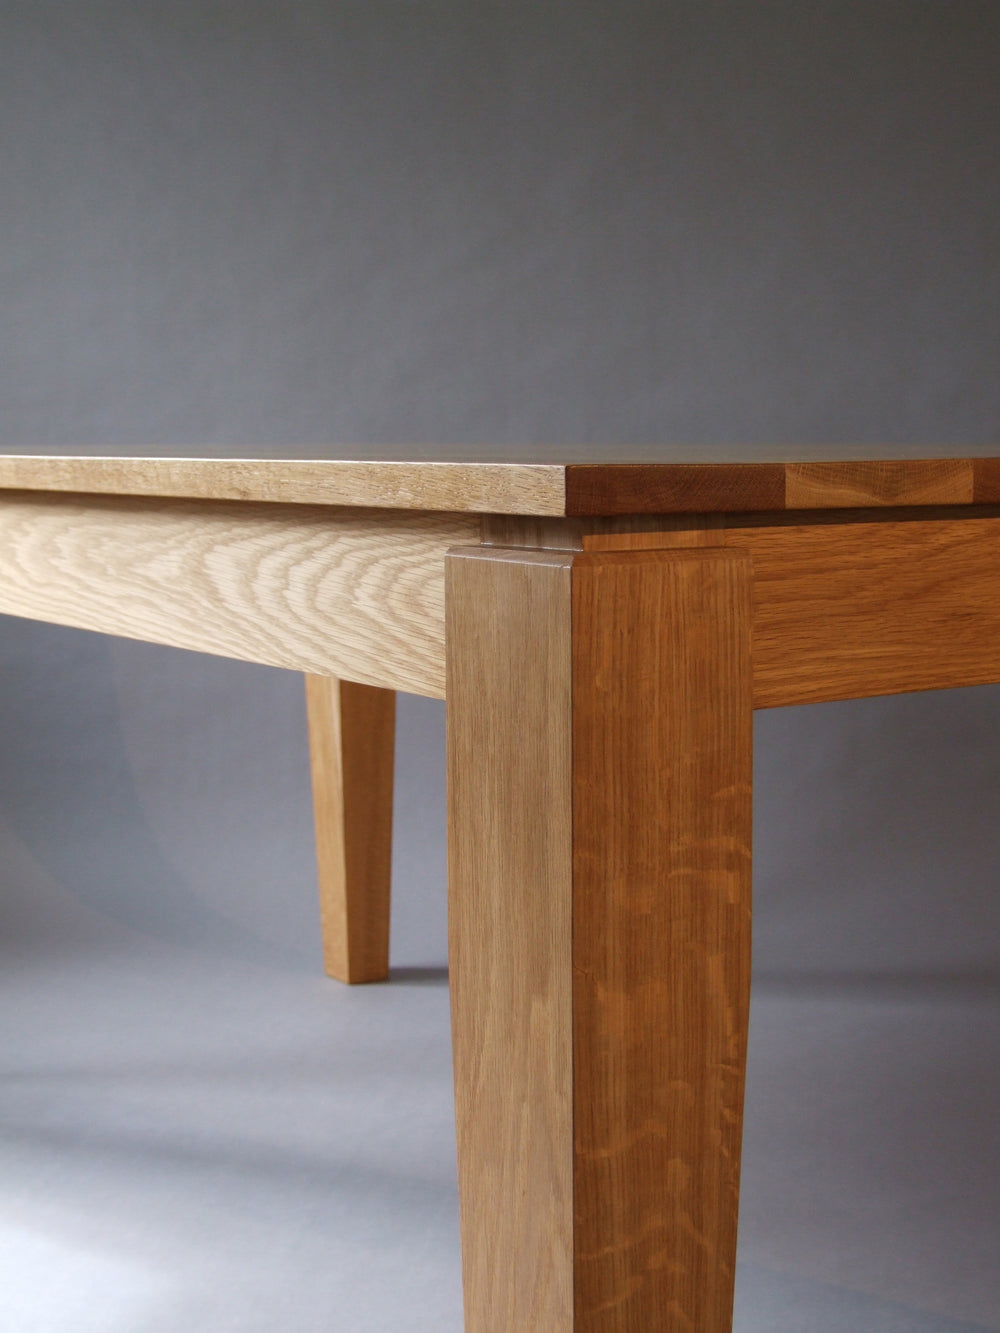 New Zealand furniture makers. Oak table